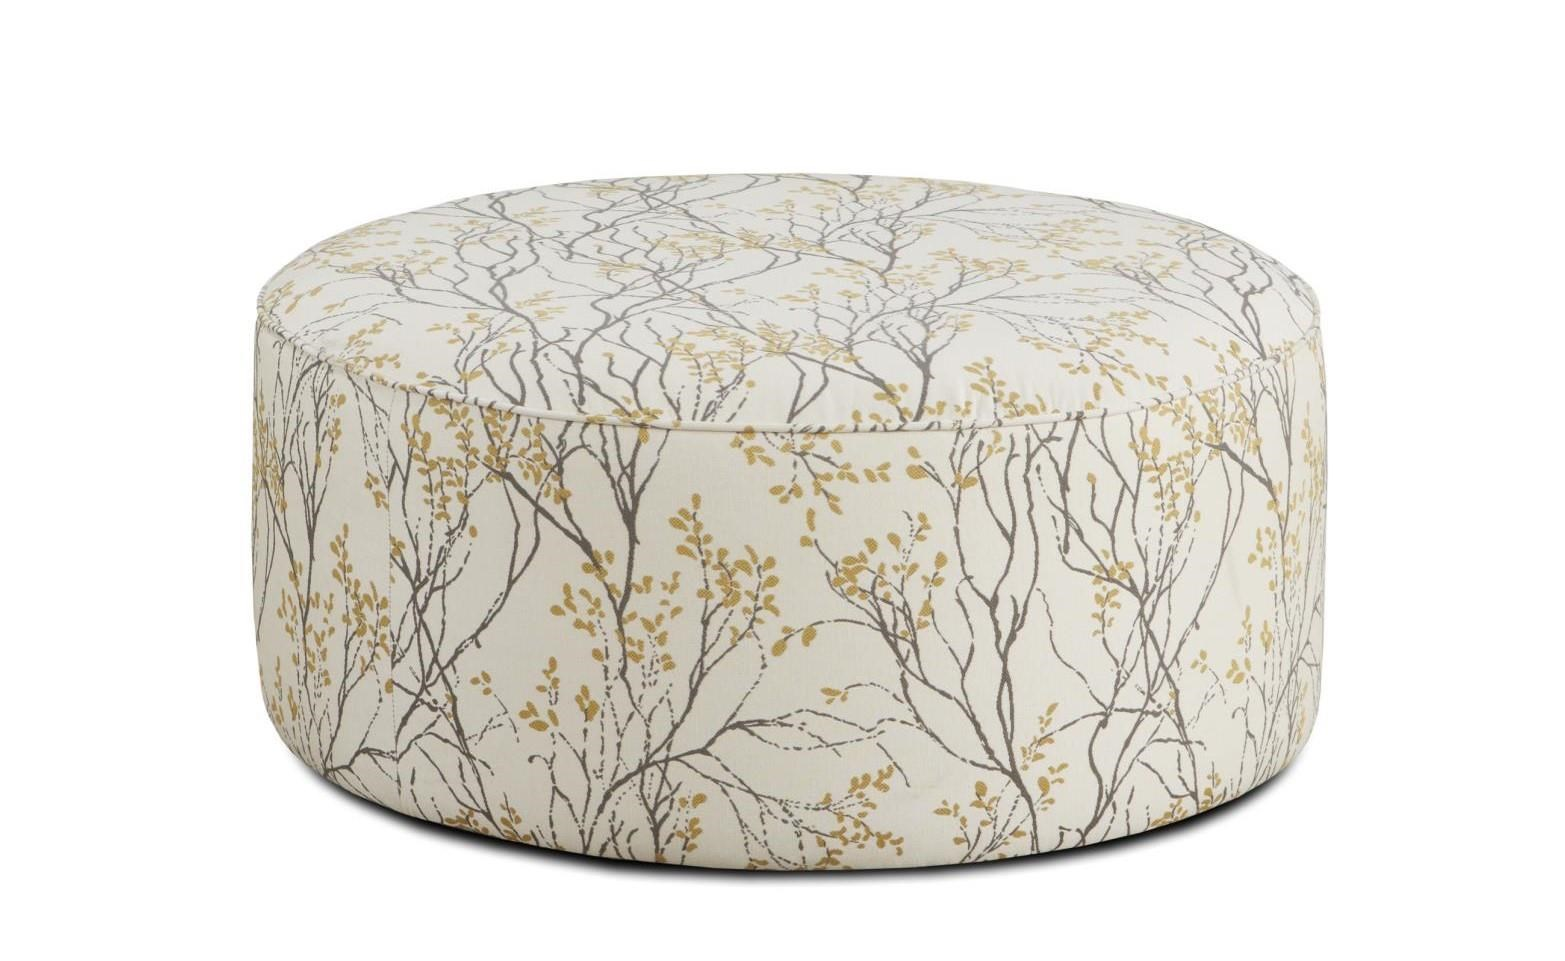 Fusion Furniture 4200 Myla Marigold Cocktail Ottoman - Item Number: 140 MYLA-MARIGOLD